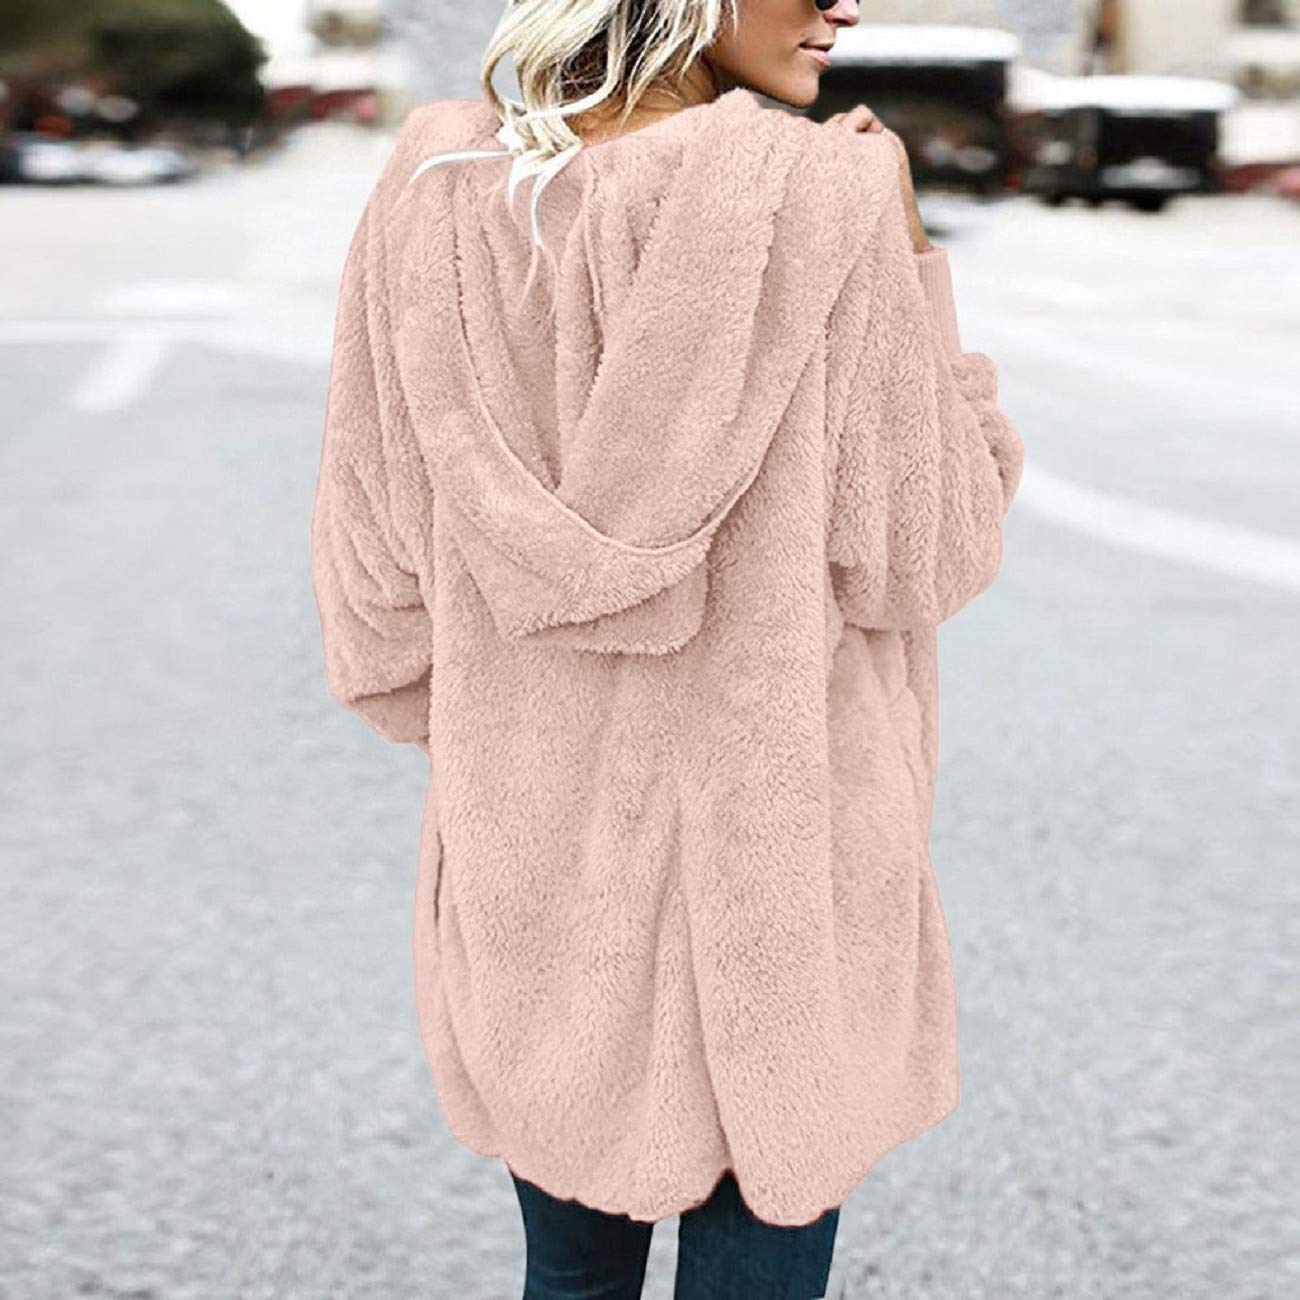 Reokoou Womens Warm Cotton Coat Oversized Plush Long Sleeve Jacket Casual Fuzzy Shaggy Parka Outwear Cardigan Hoodie Top